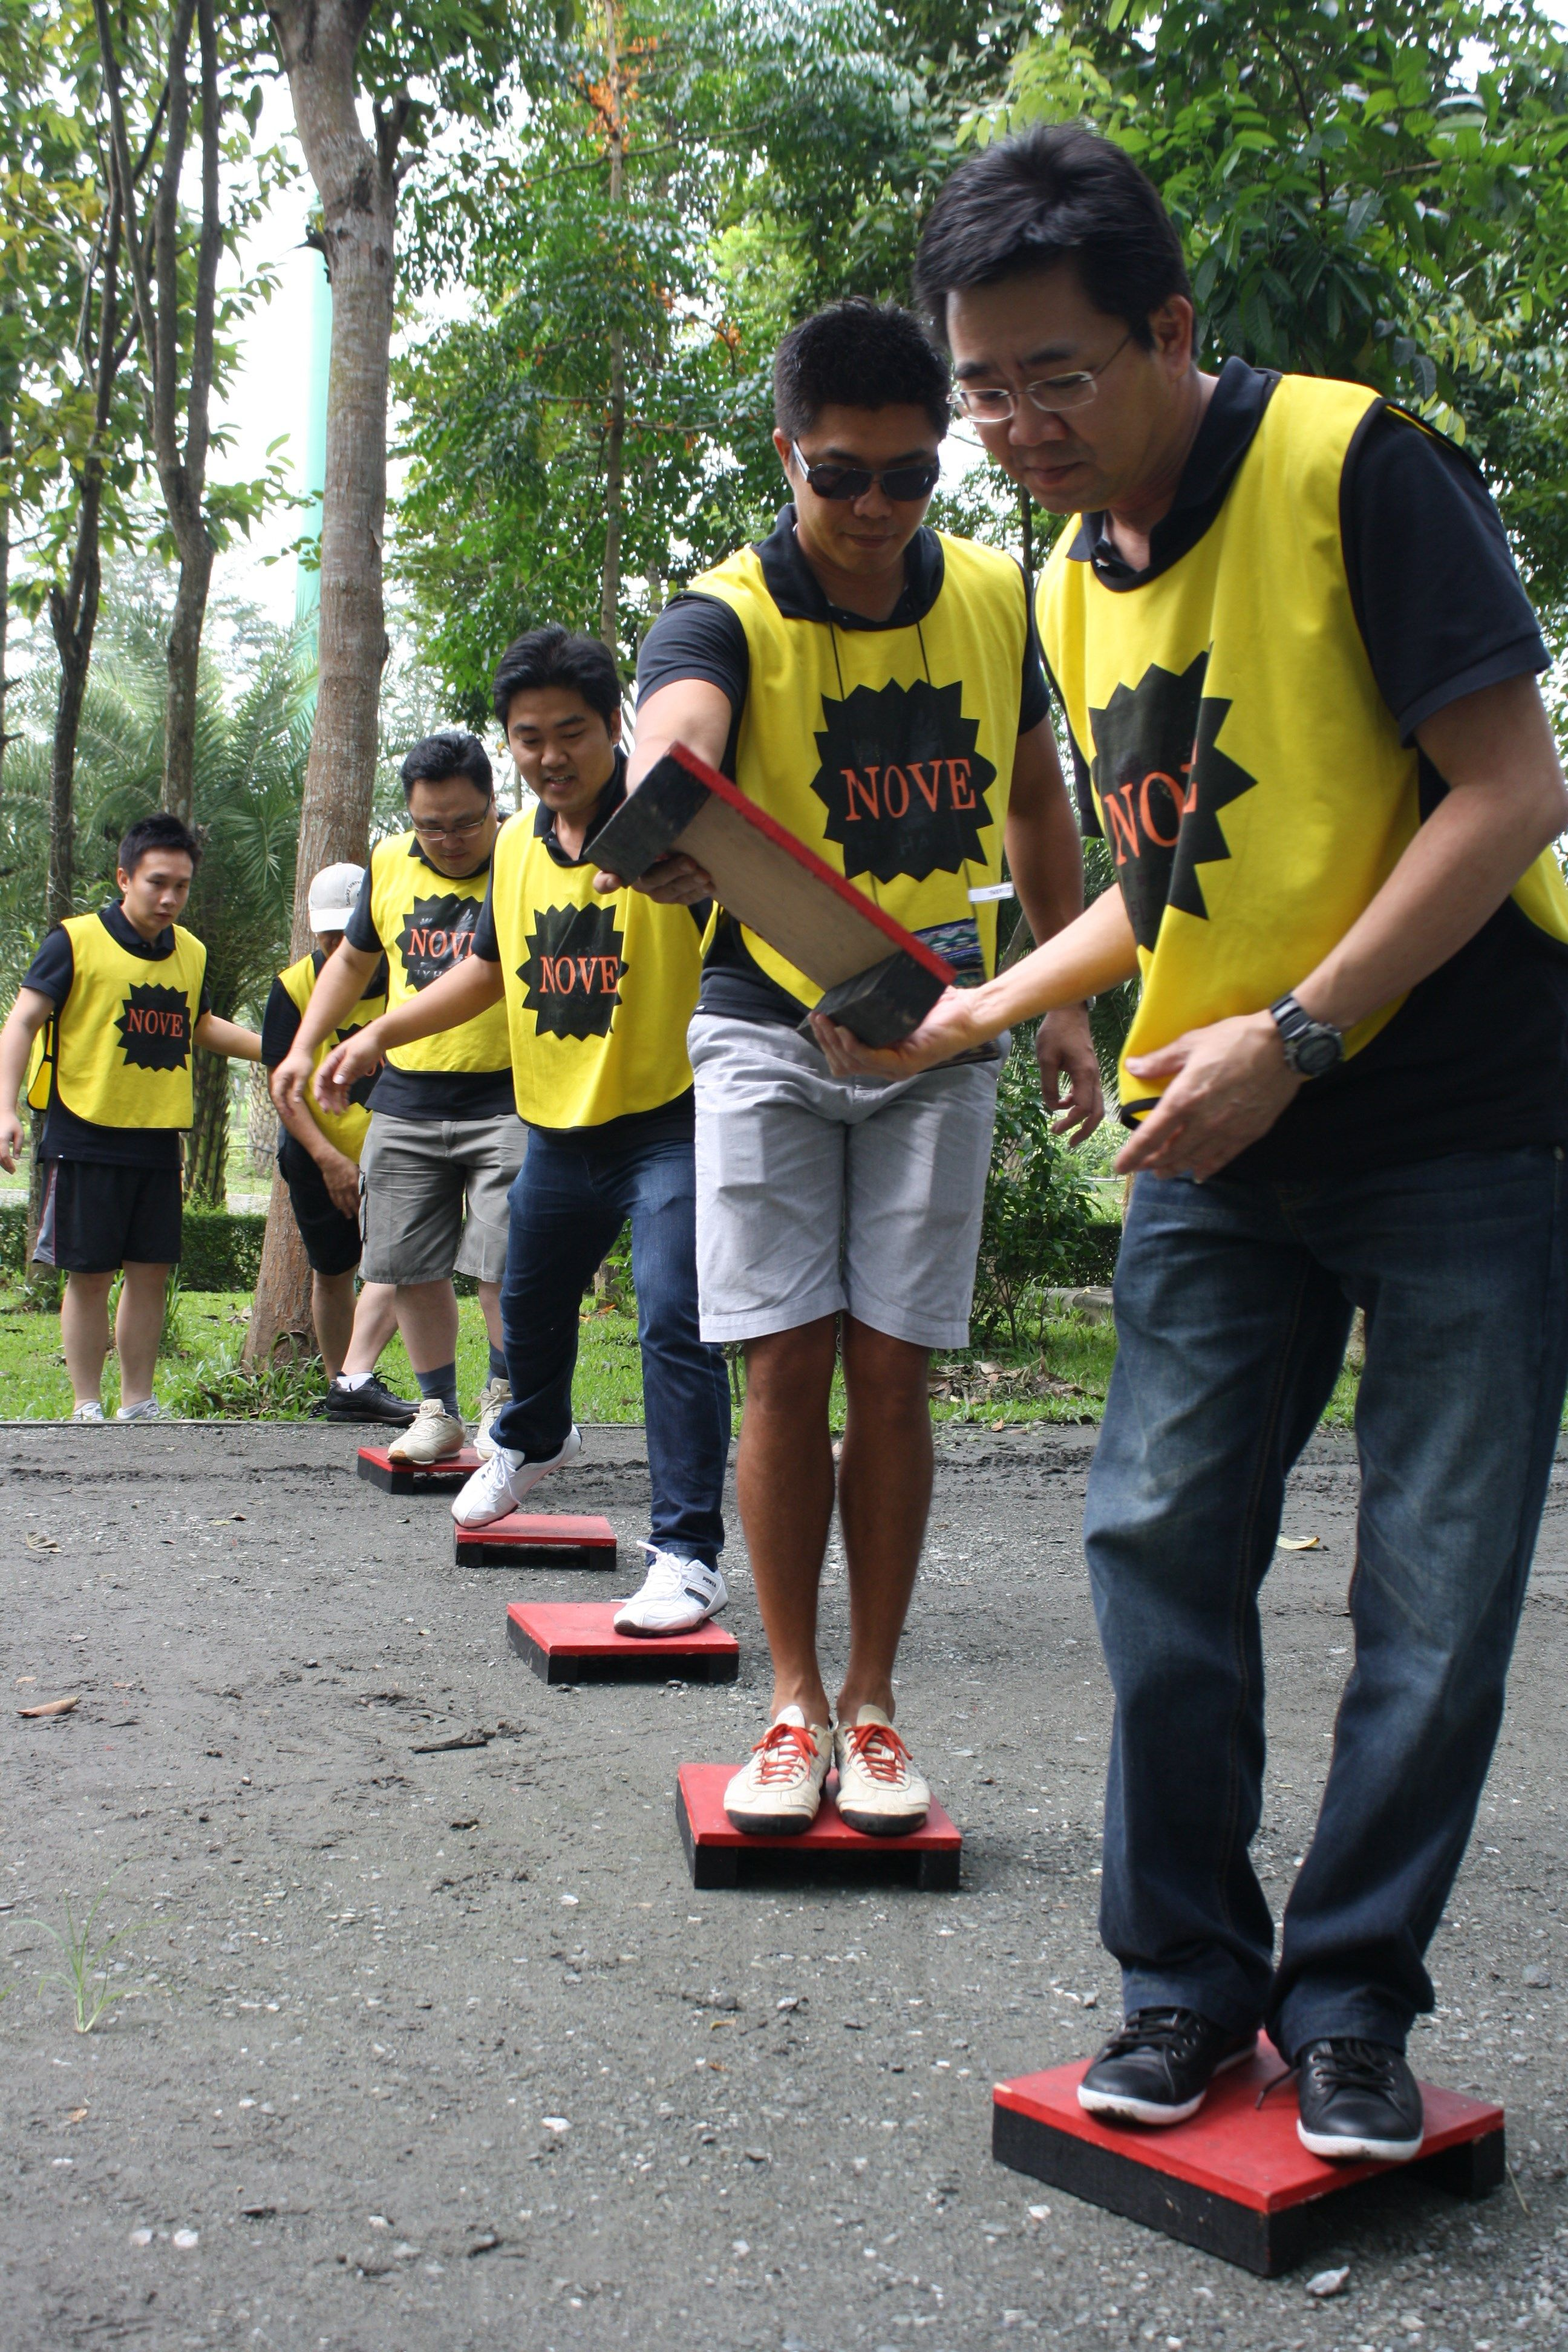 Camping games a team building activity on a track of the